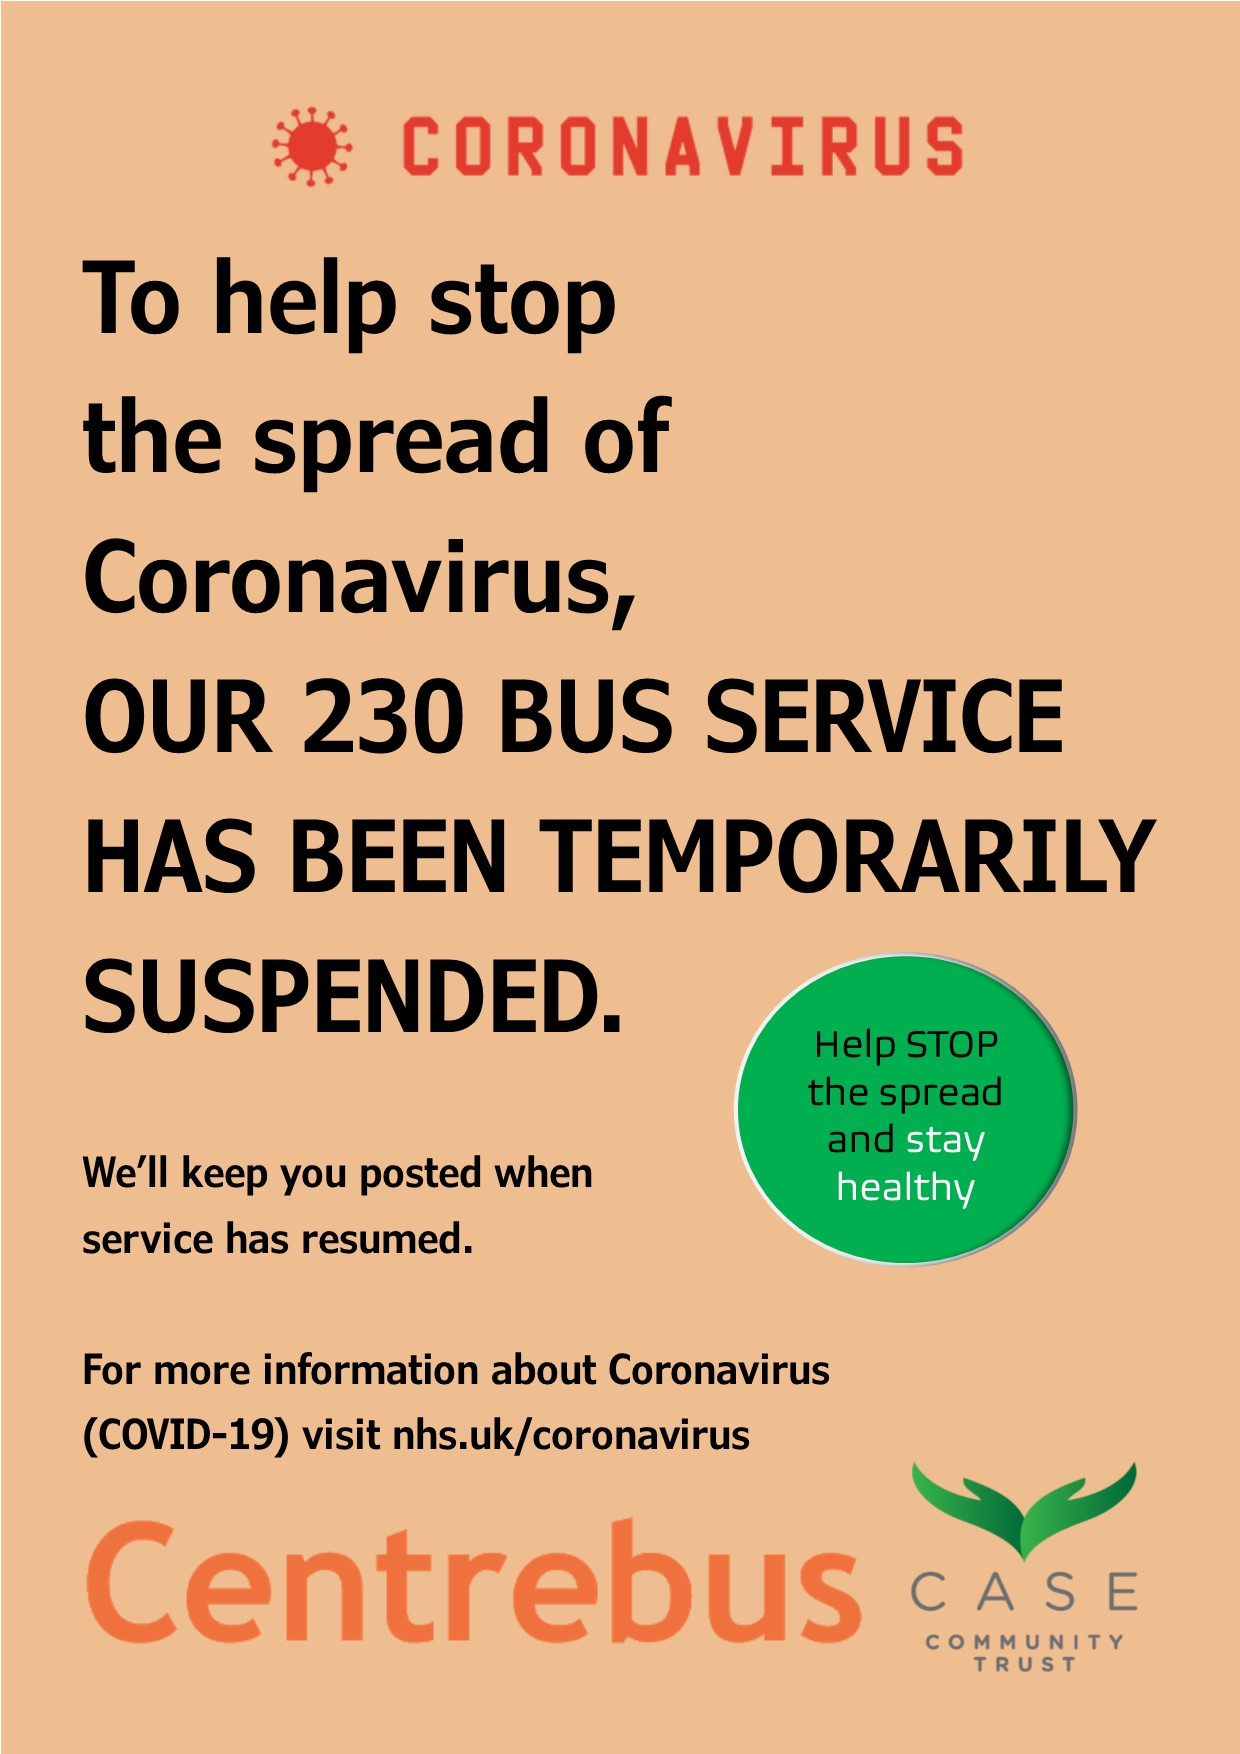 Corona_Bus-Service-Suspension-Poster